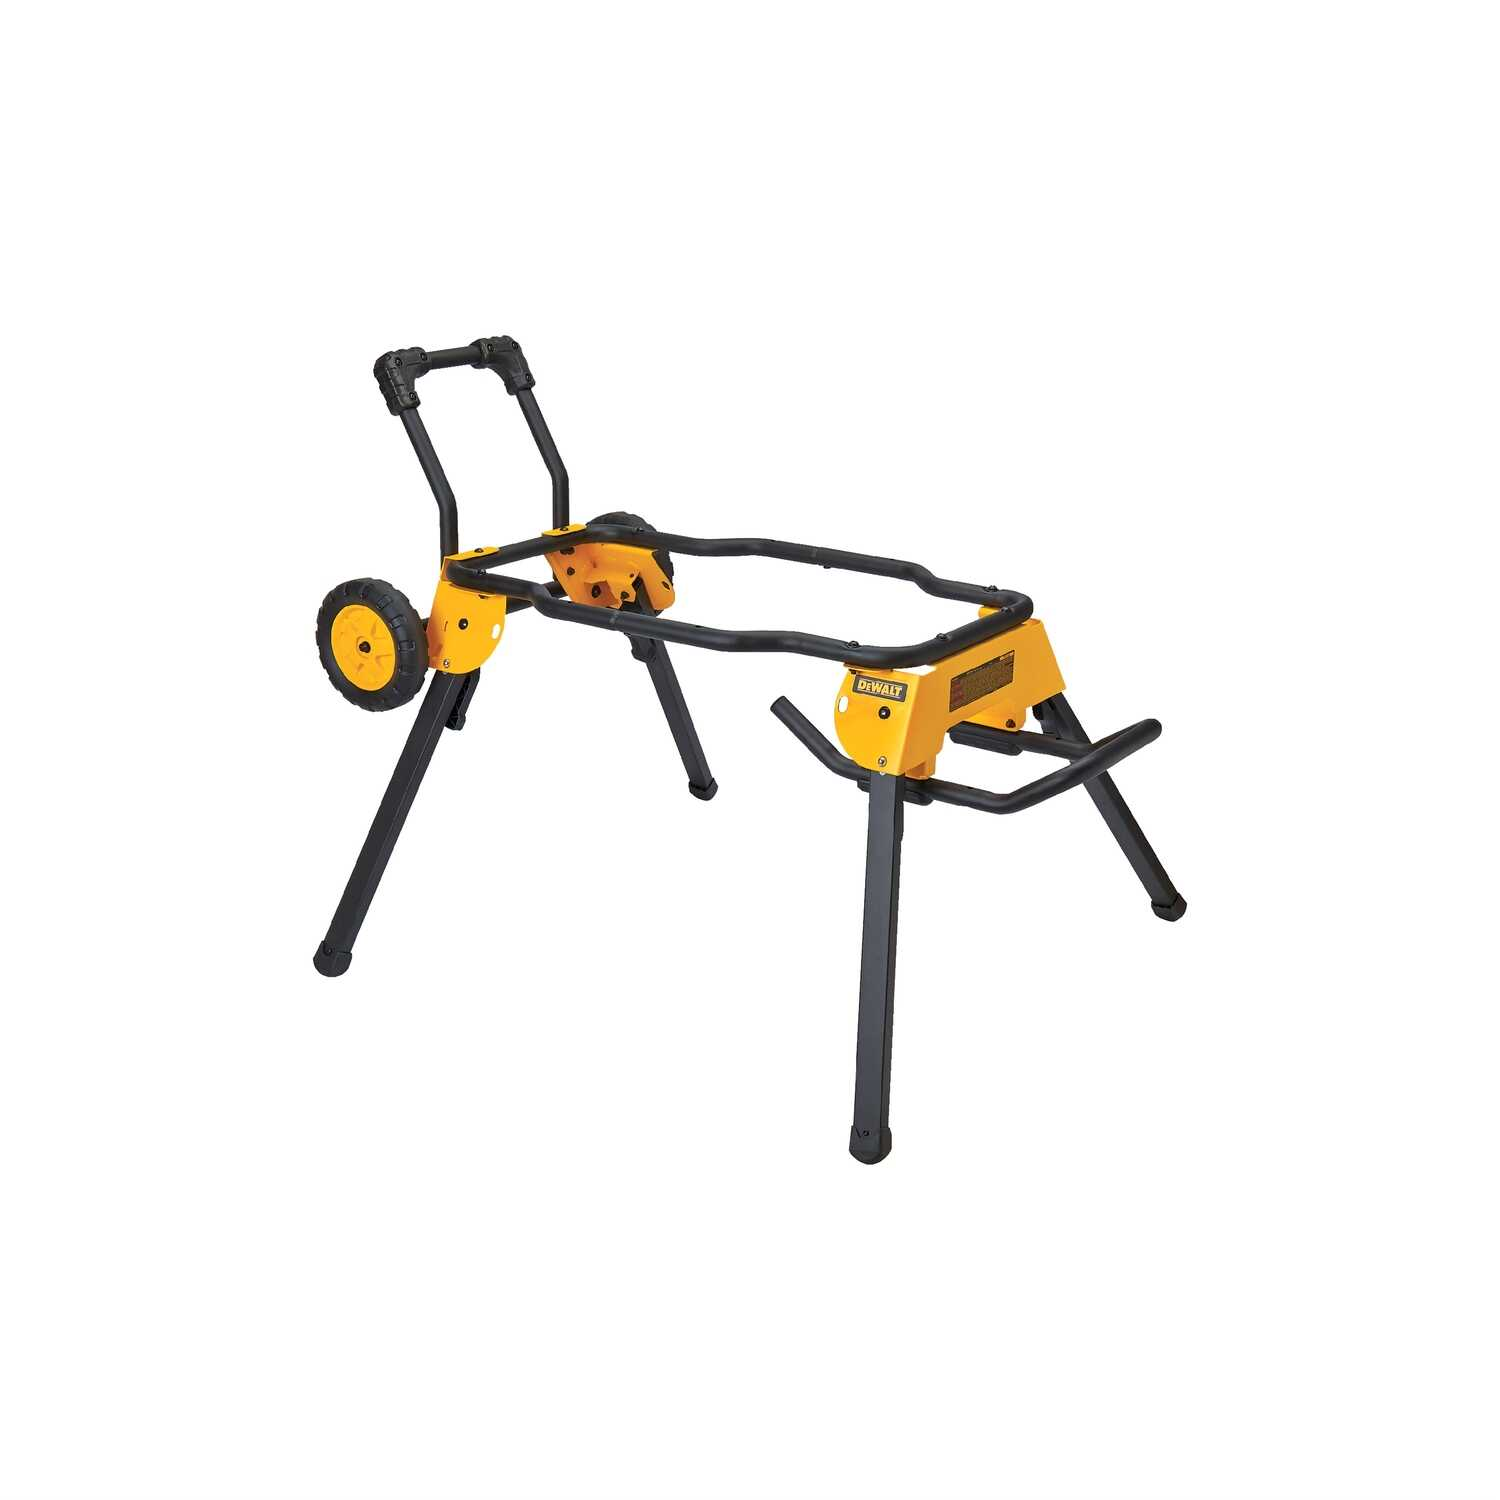 DeWalt  Steel  47-1/2 in. L x 25-1/4 in. H x 25-13/16 in. W Rolling Table Saw Stand  Yellow  1 pc.